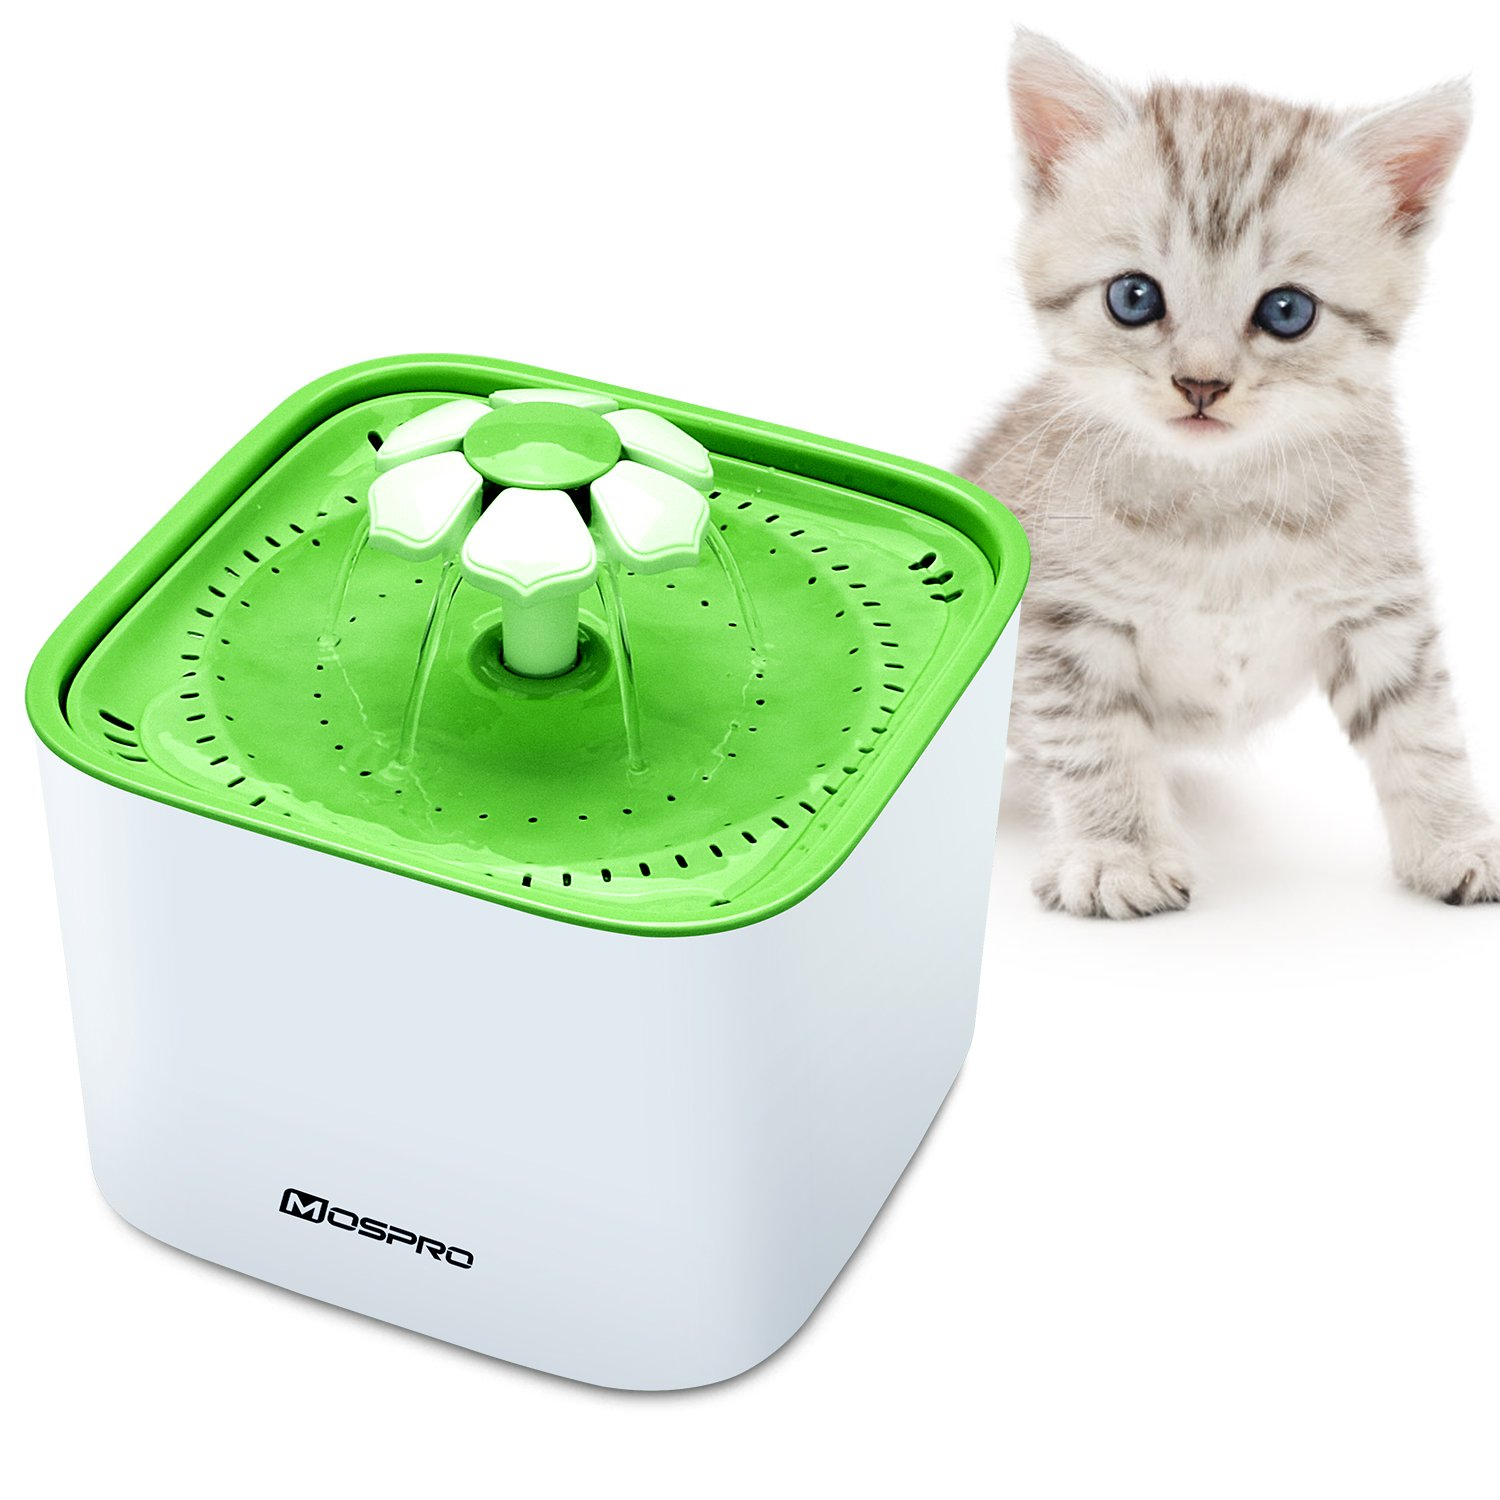 Pet Fountain Cat Water Dispenser - BPA-free Flower Drinking Fountain 2L Ultra Quiet Automatic Electric Water Bowl with 2 Filters for Cats Dogs Birds and Small Animals Health Caring and Hygienic, Green